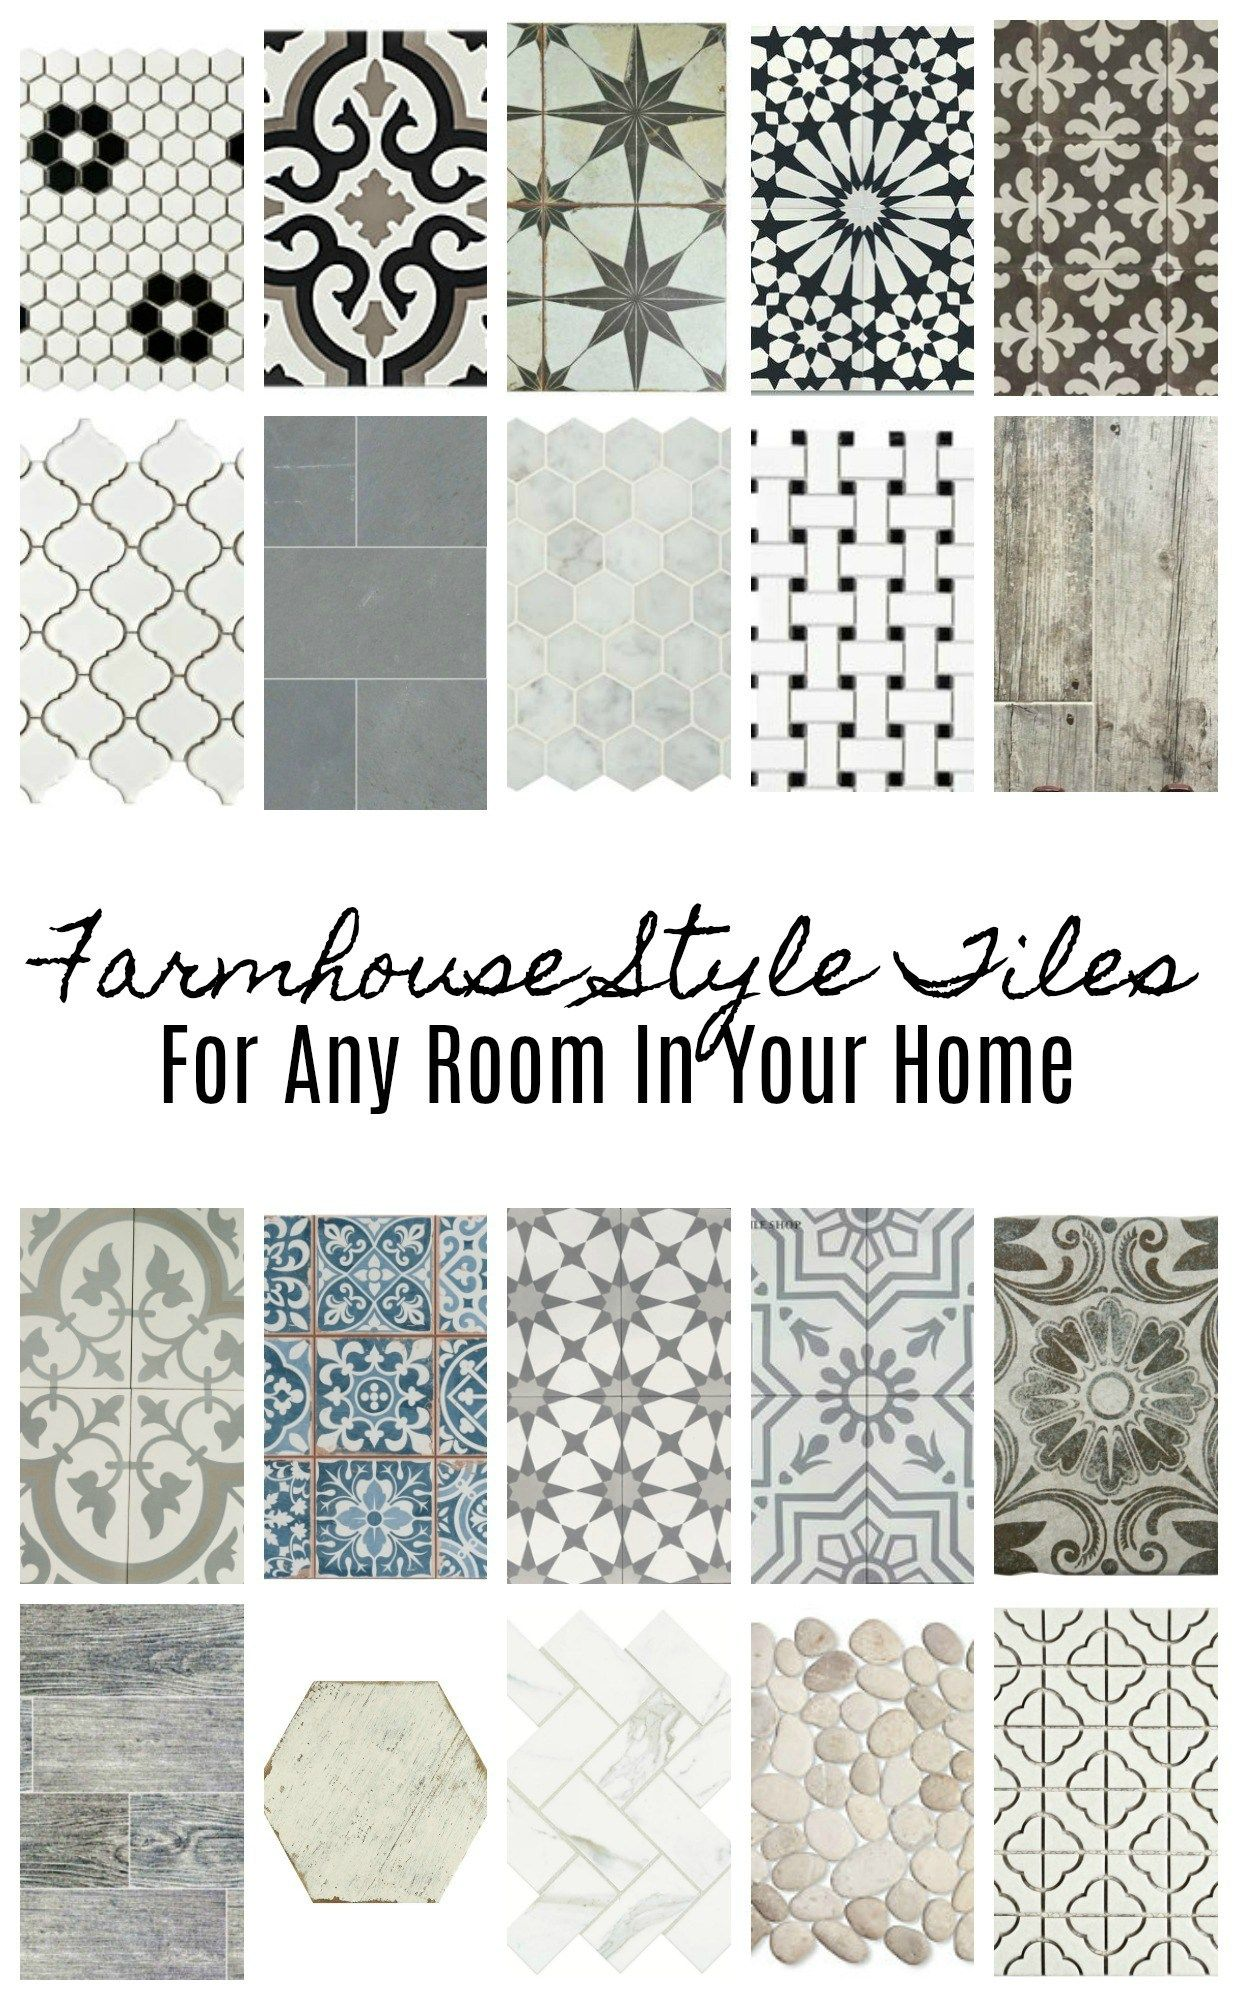 20 Beautiful Farmhouse Style Tiles Farmhouse Flooring Style Tile Country Farmhouse Decor